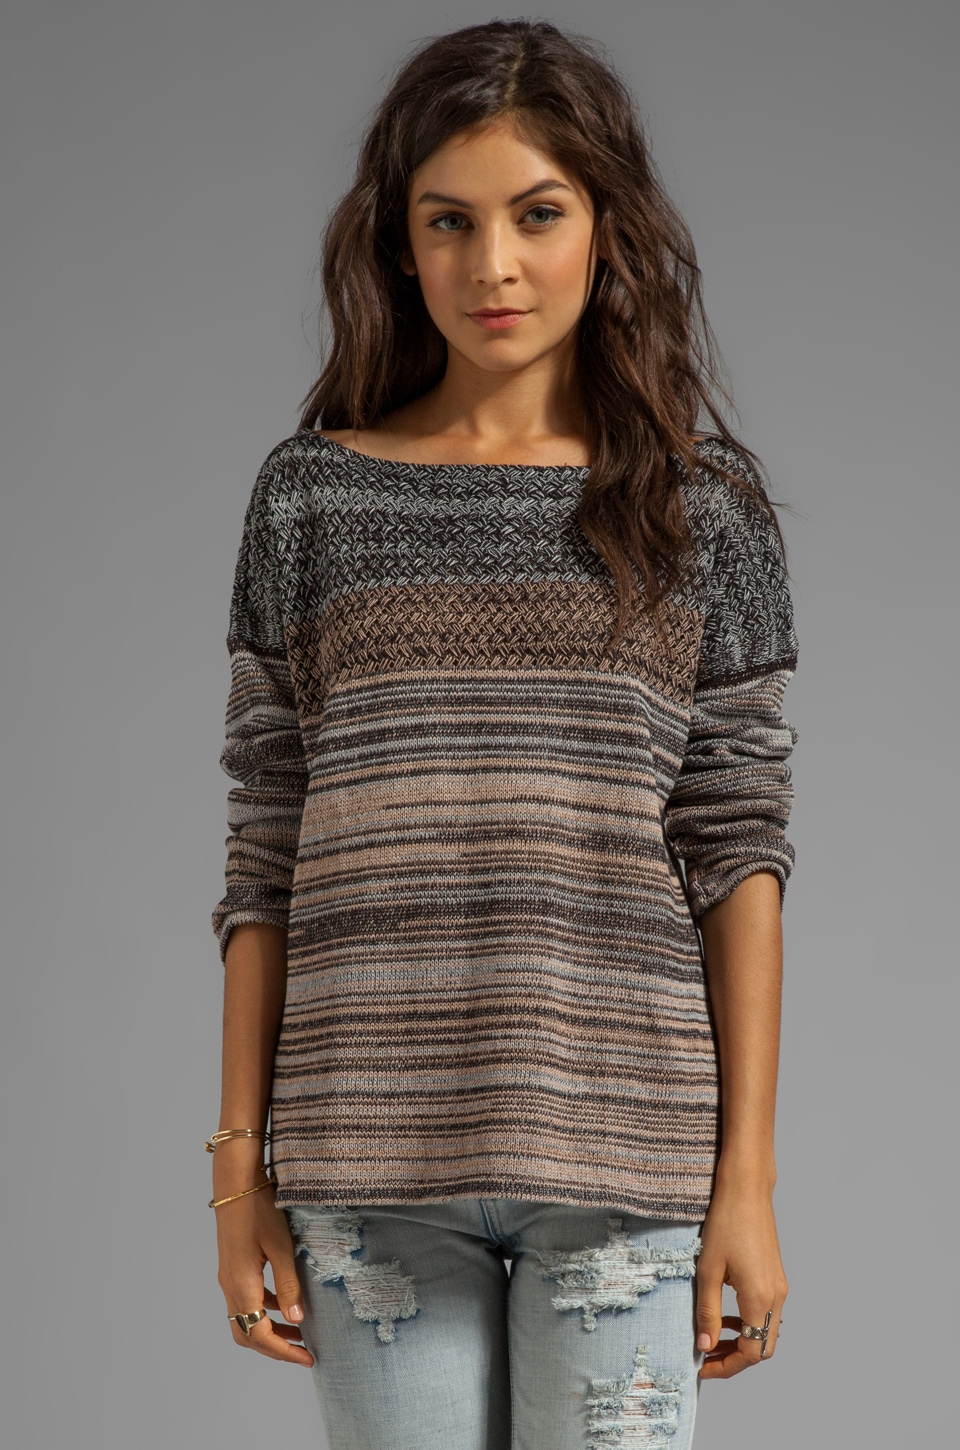 Goddis Kaylee Sweater in Steel Sky